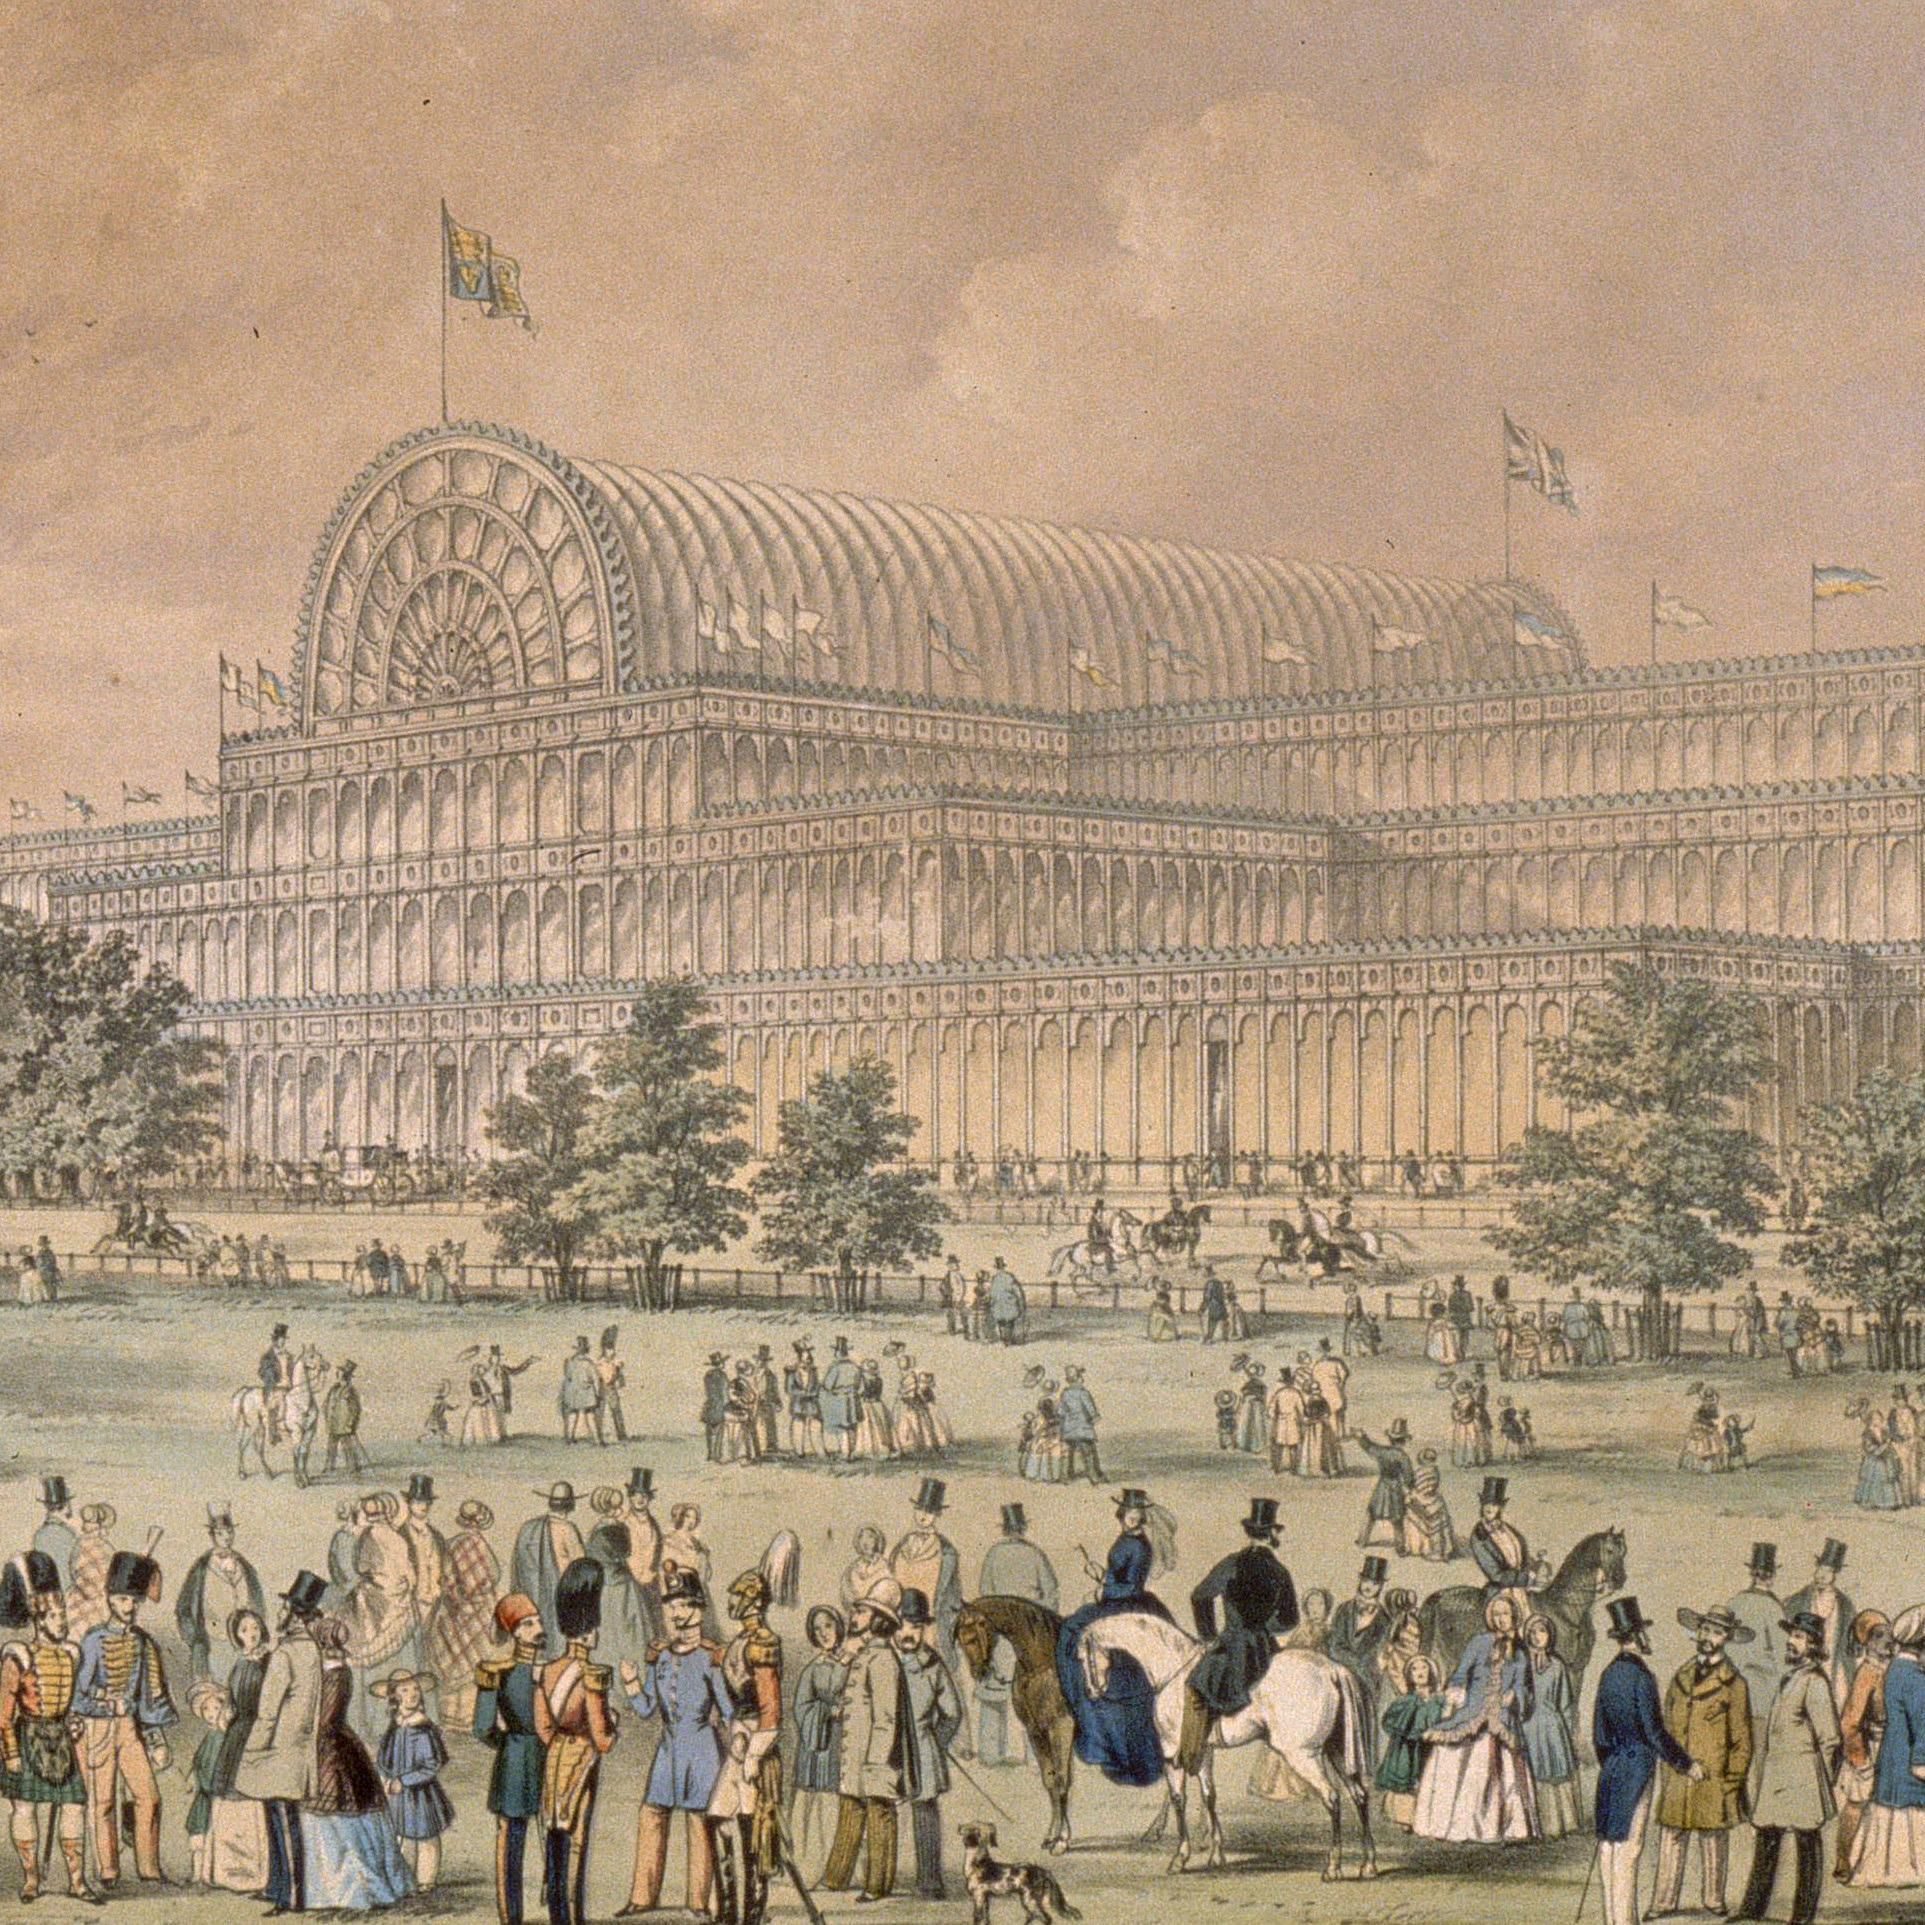 Britain's Great Exhibition of 1851